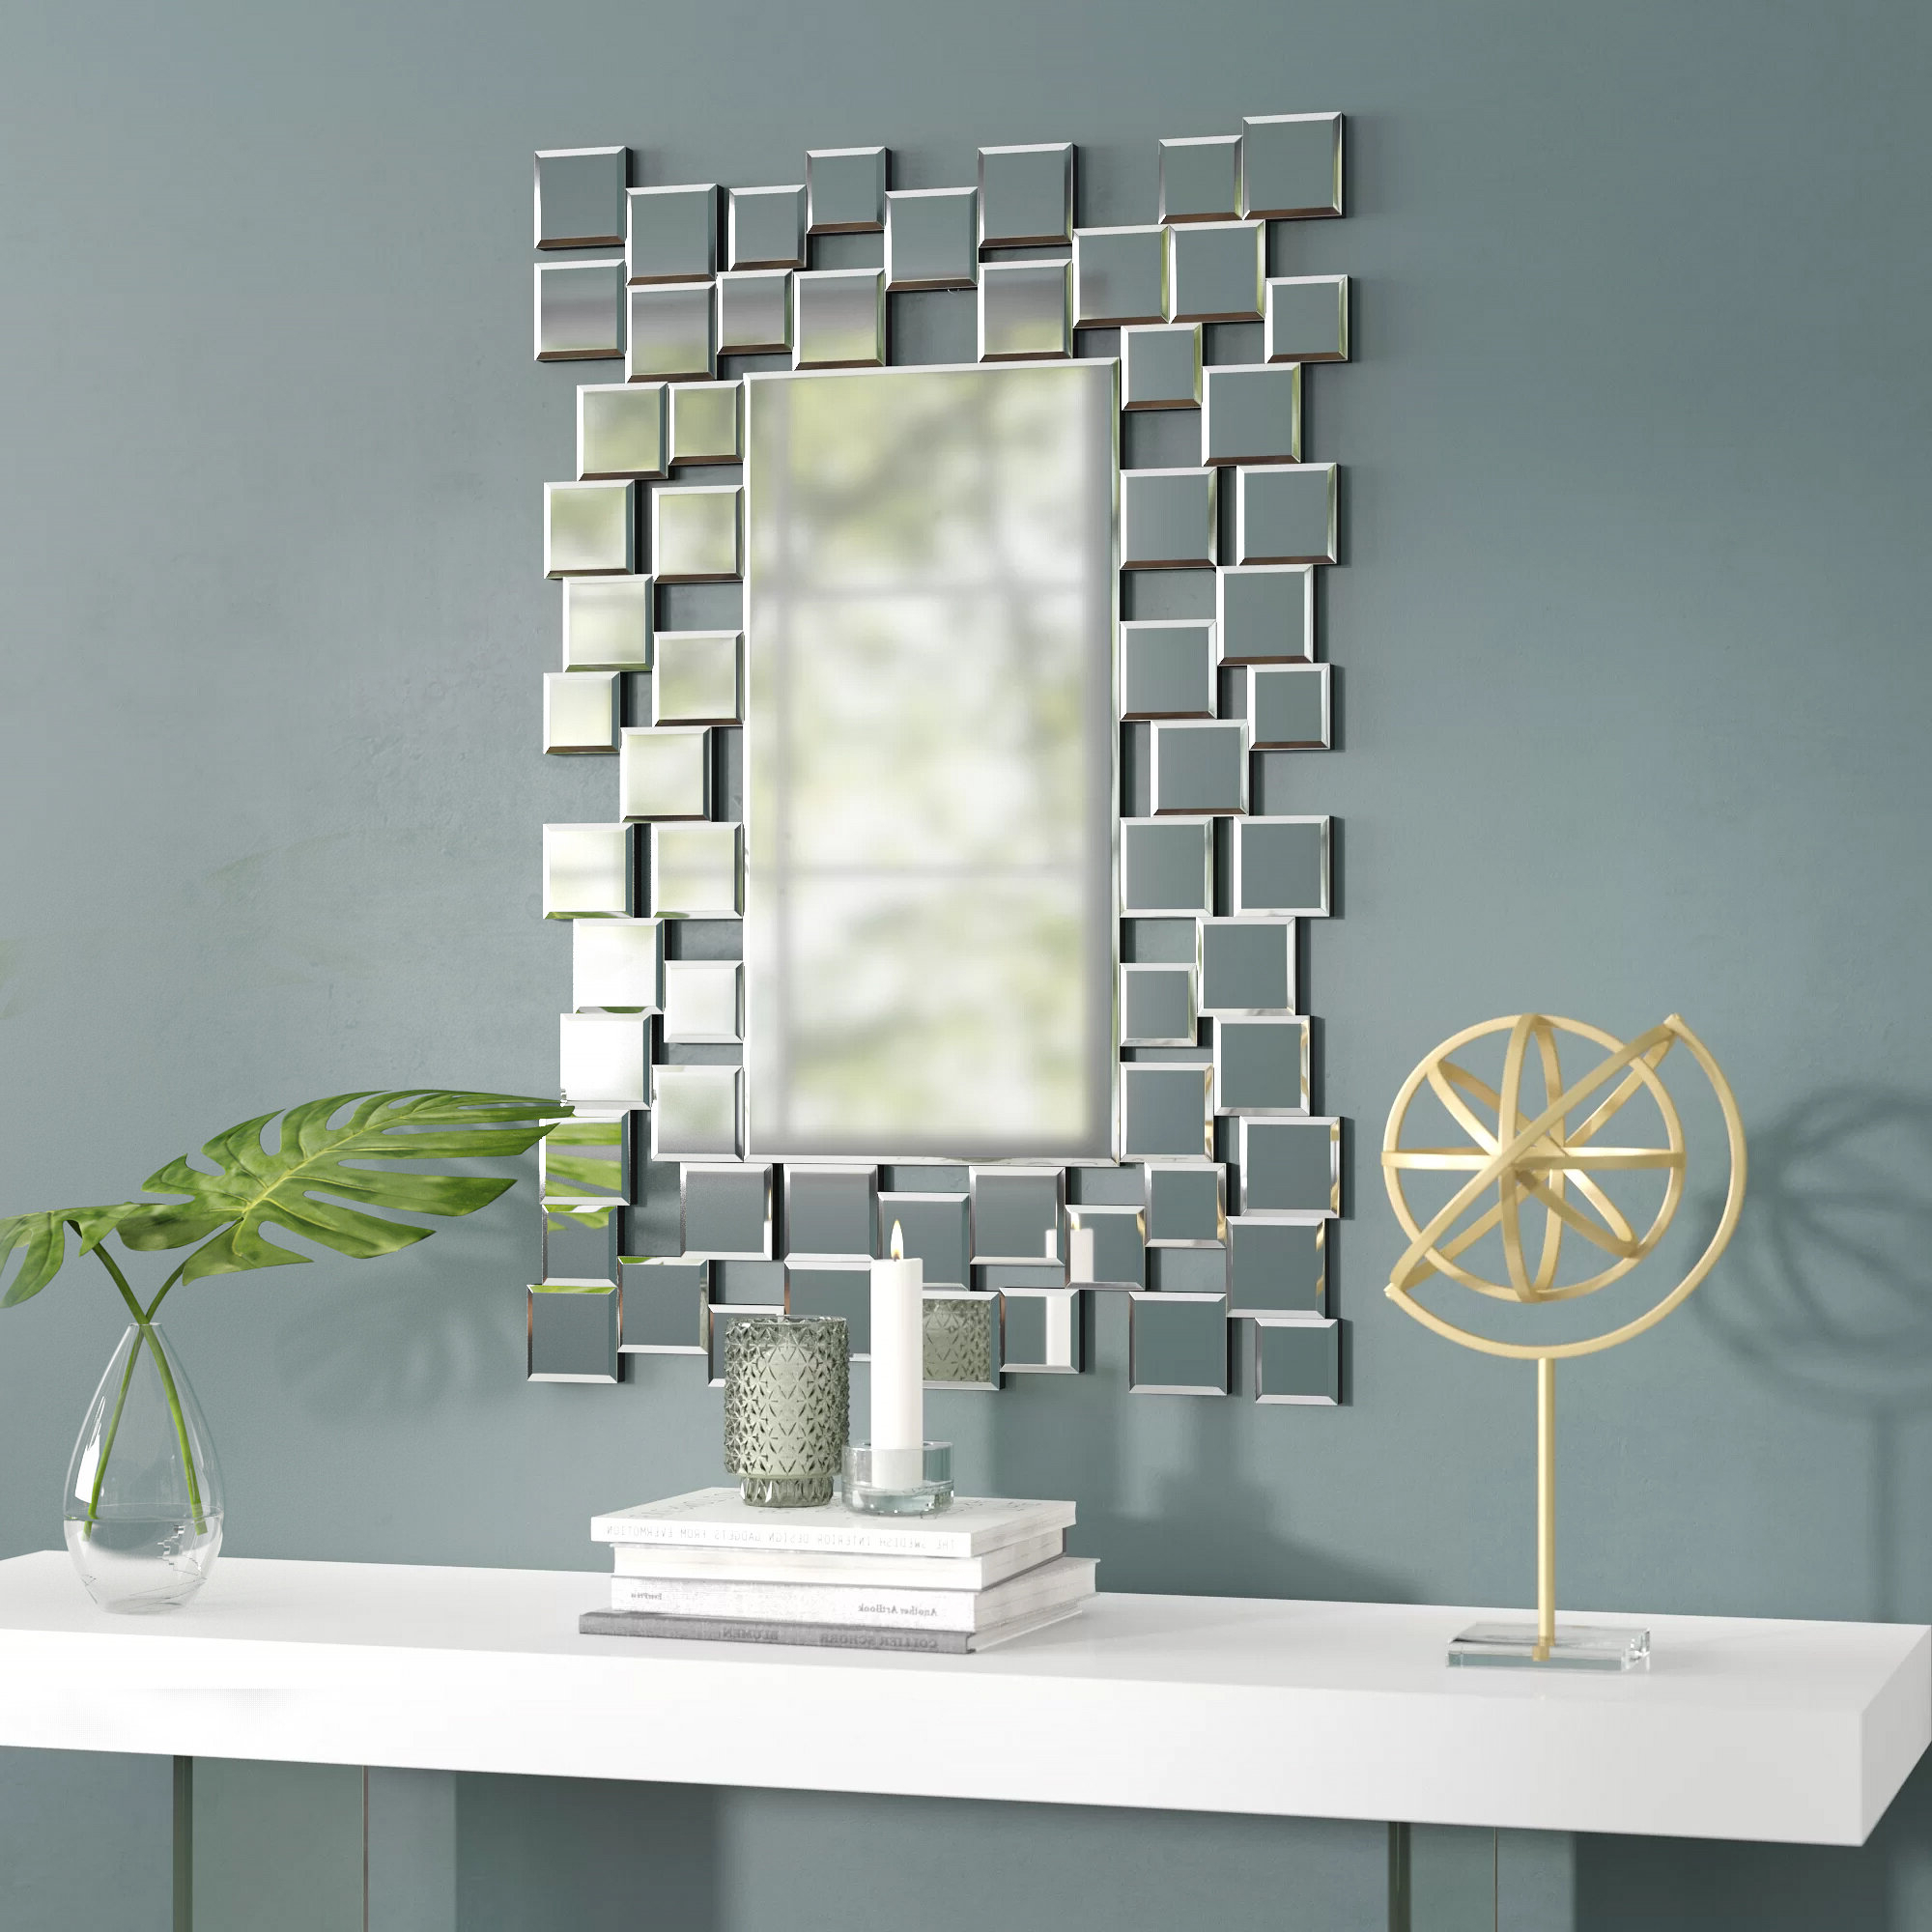 Pennsburg Rectangle Wall Mirror By Wade Logan With Recent Brayden Studio Modern & Contemporary Accent Wall Mirror (View 5 of 20)